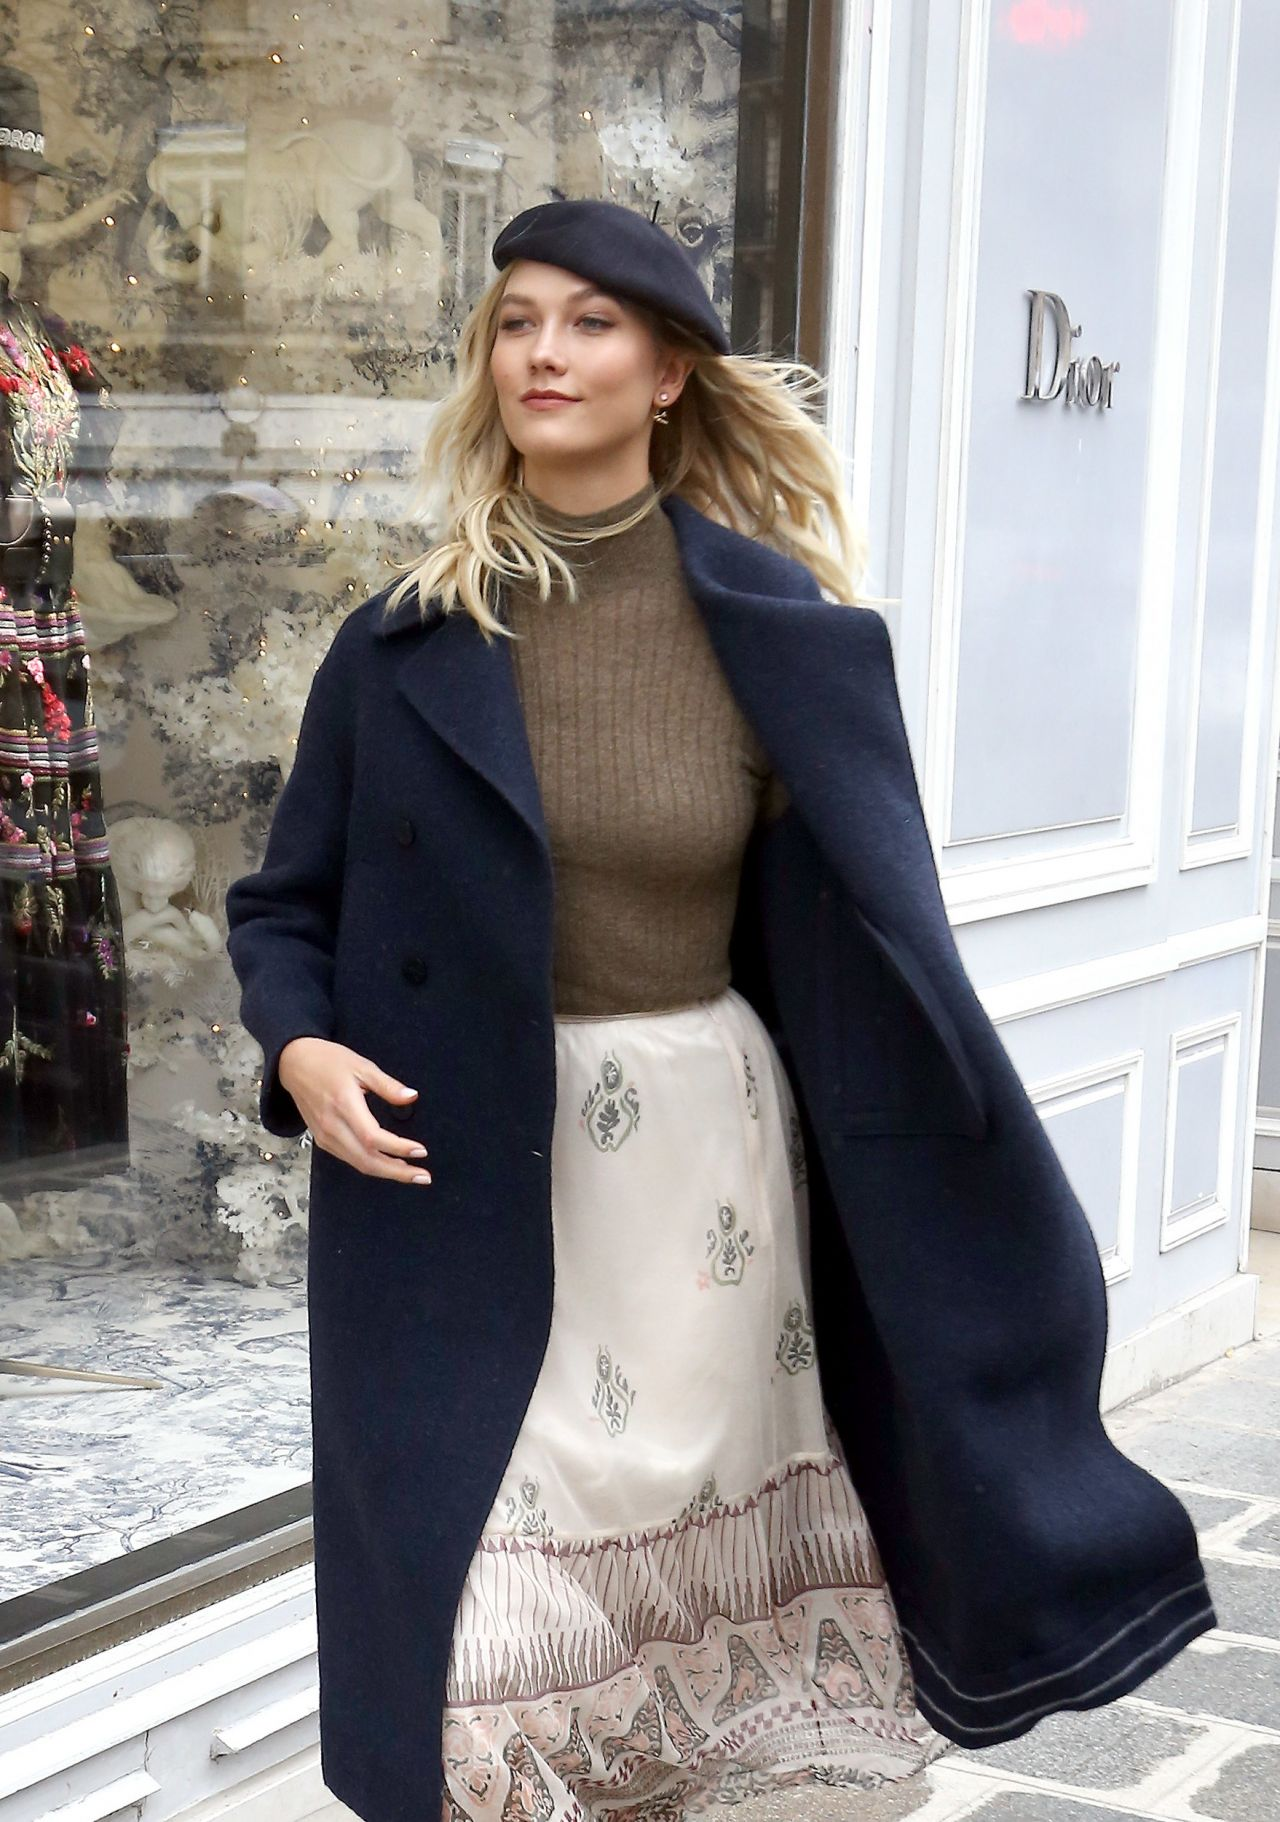 19 Stylish Fall Outfits Worth Copying: Karlie Kloss Style And Fashion 01/19/2019